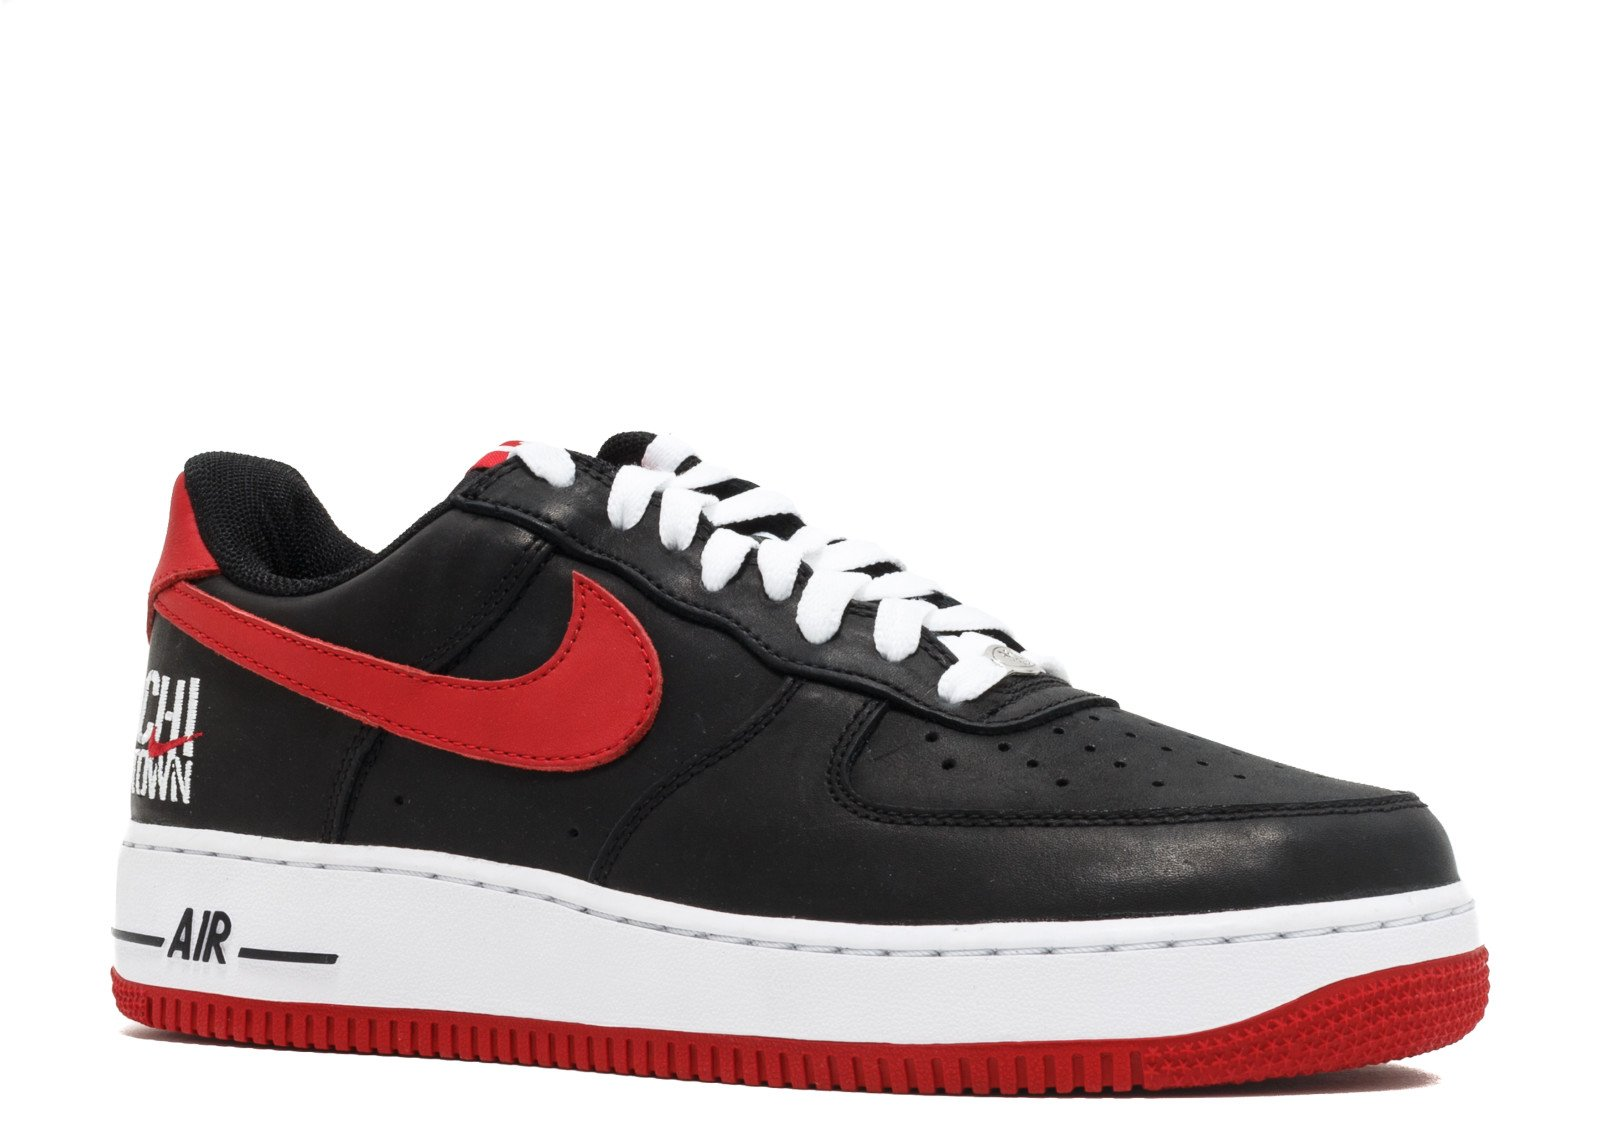 the best attitude b9bbb f7ef5 Galleon - Nike Air Force 1 Low Retro Black Varsity Red-White (11 D(M) US)